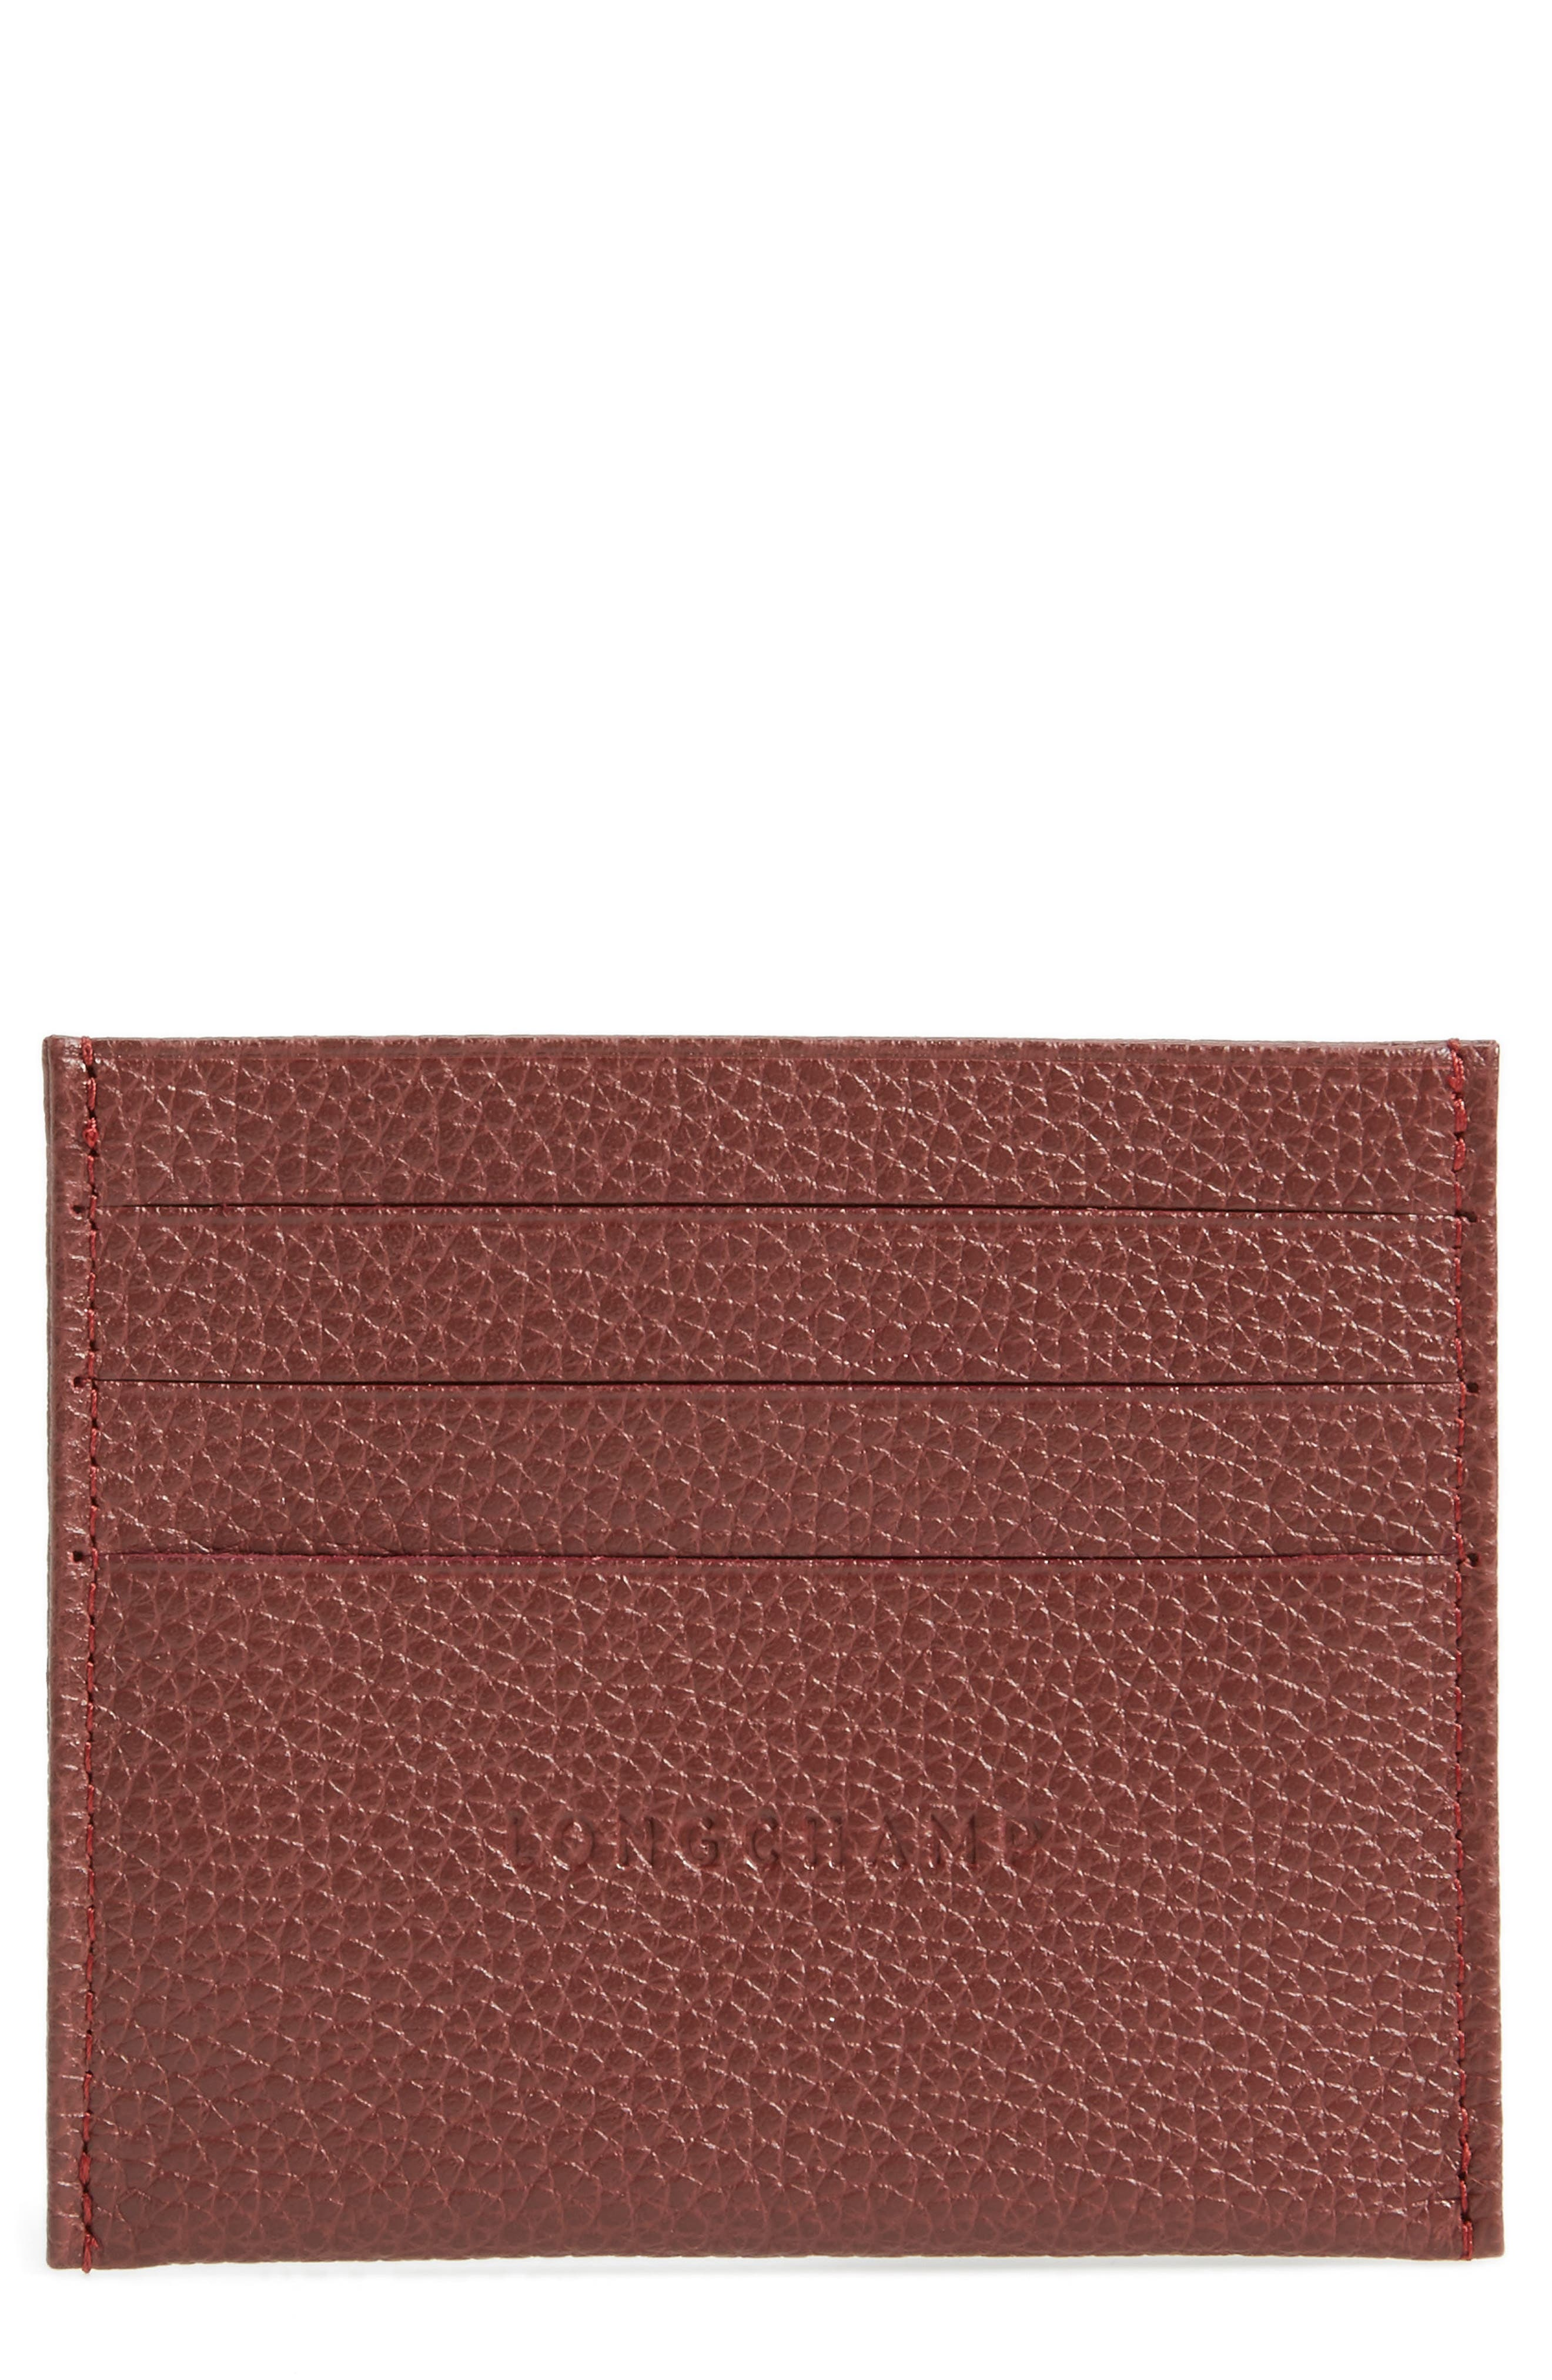 'Le Foulonne' Pebbled Leather Card Holder,                             Main thumbnail 1, color,                             Red Lacquer